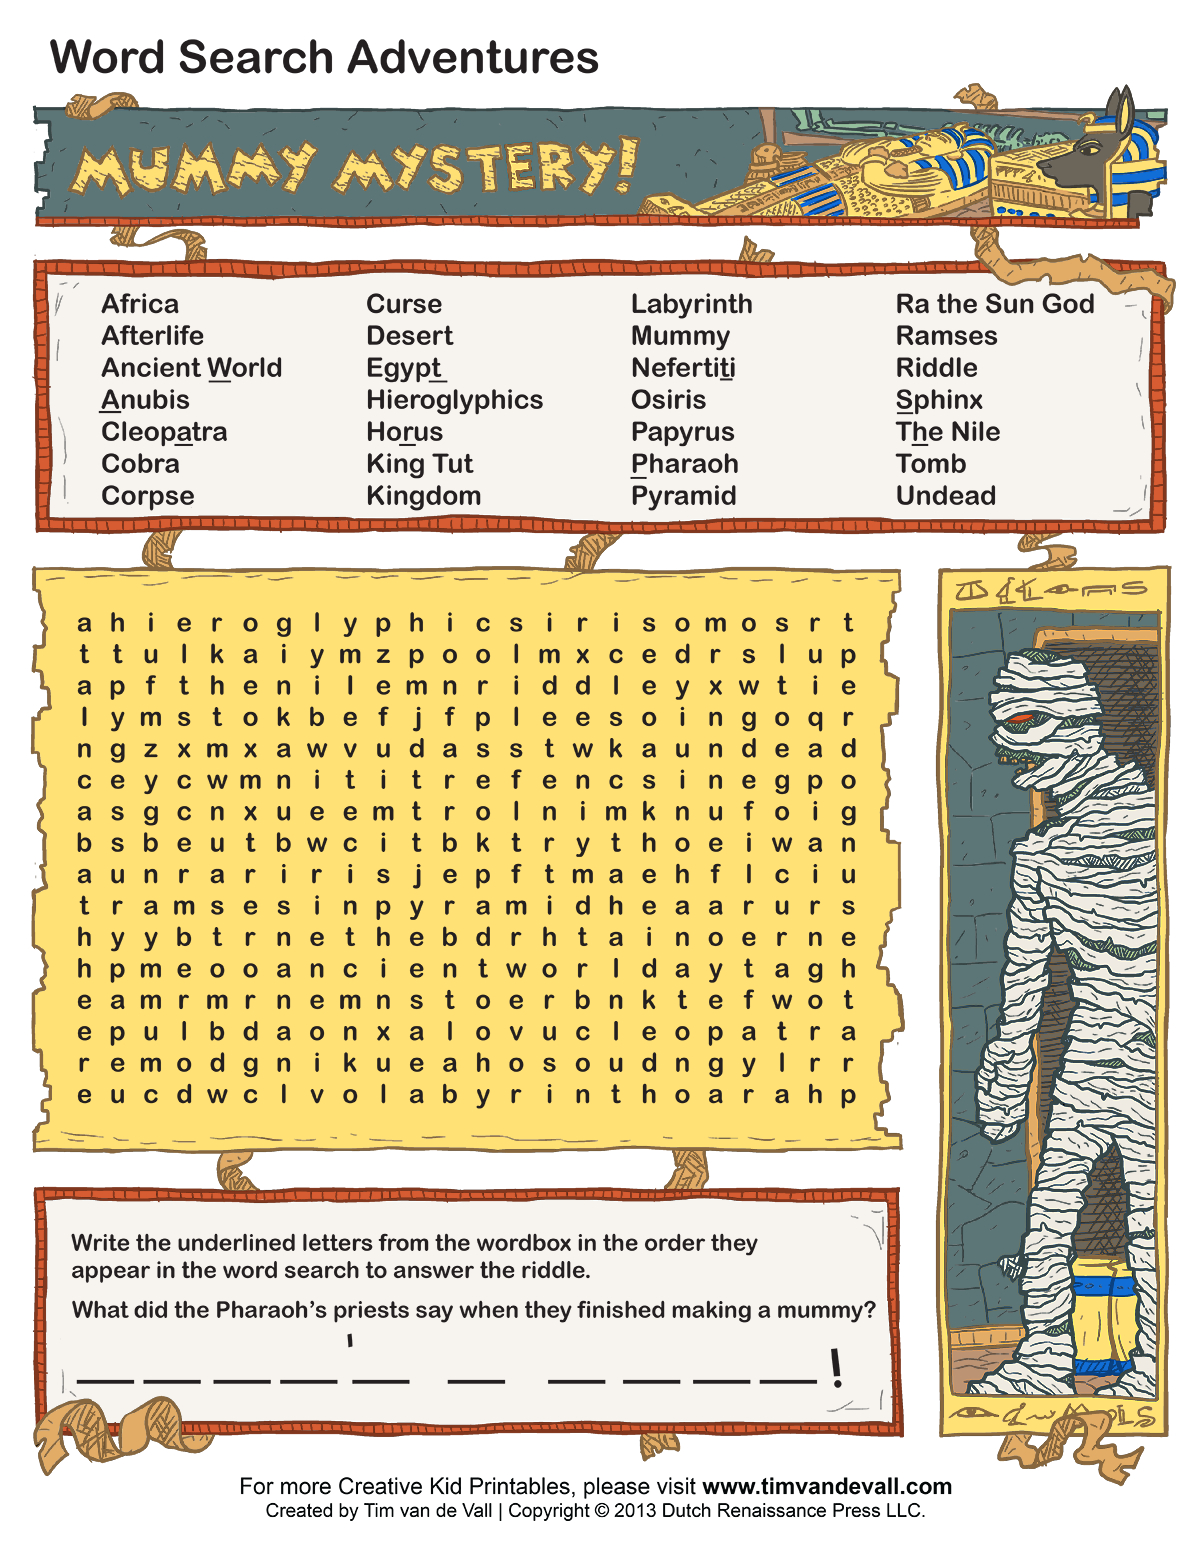 Free Printable Word Searches For Kids | Adventure Theme Games For - Printable Lexicon Puzzles